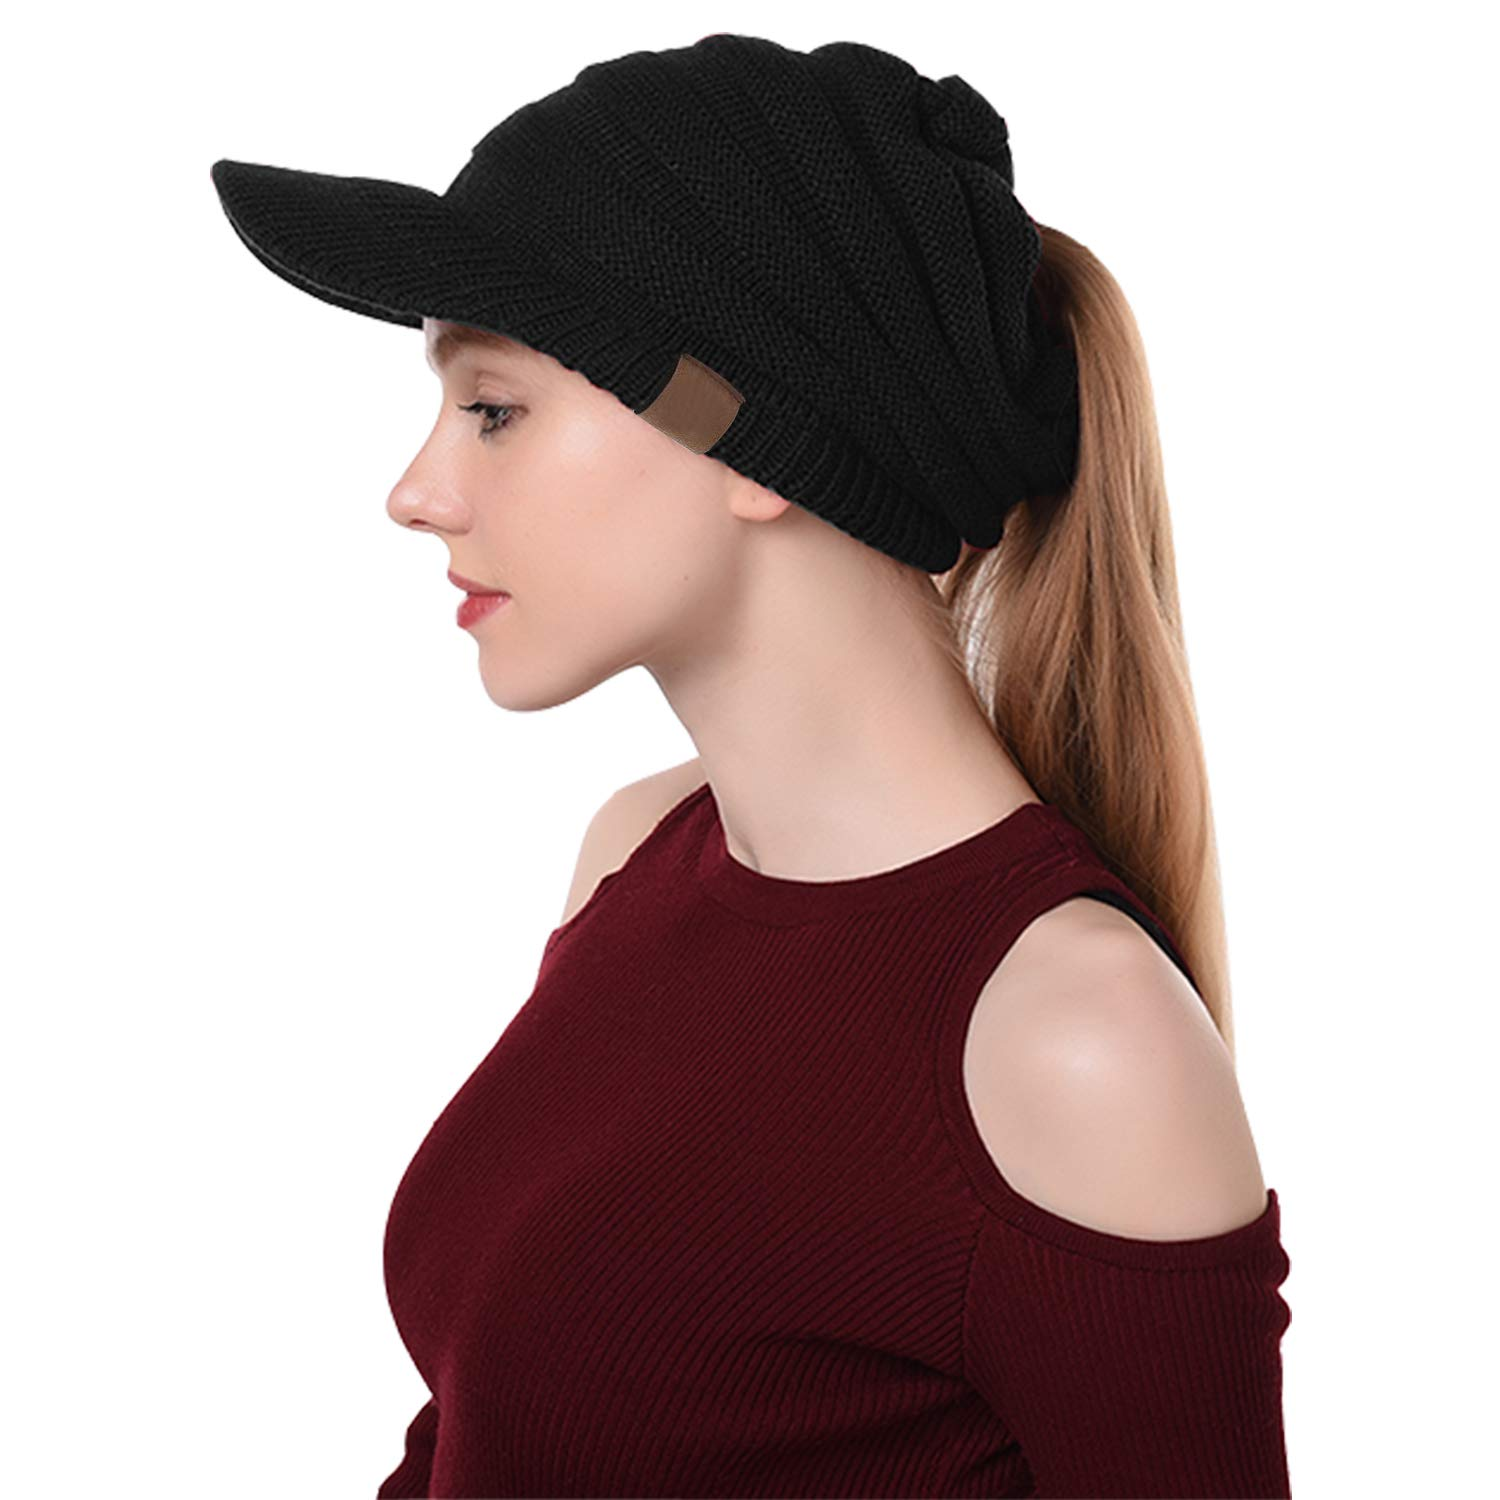 57a884d513f01 Libertepe Ponytail Beanie Cable Knit Winter Hat with Visor Hole for ...